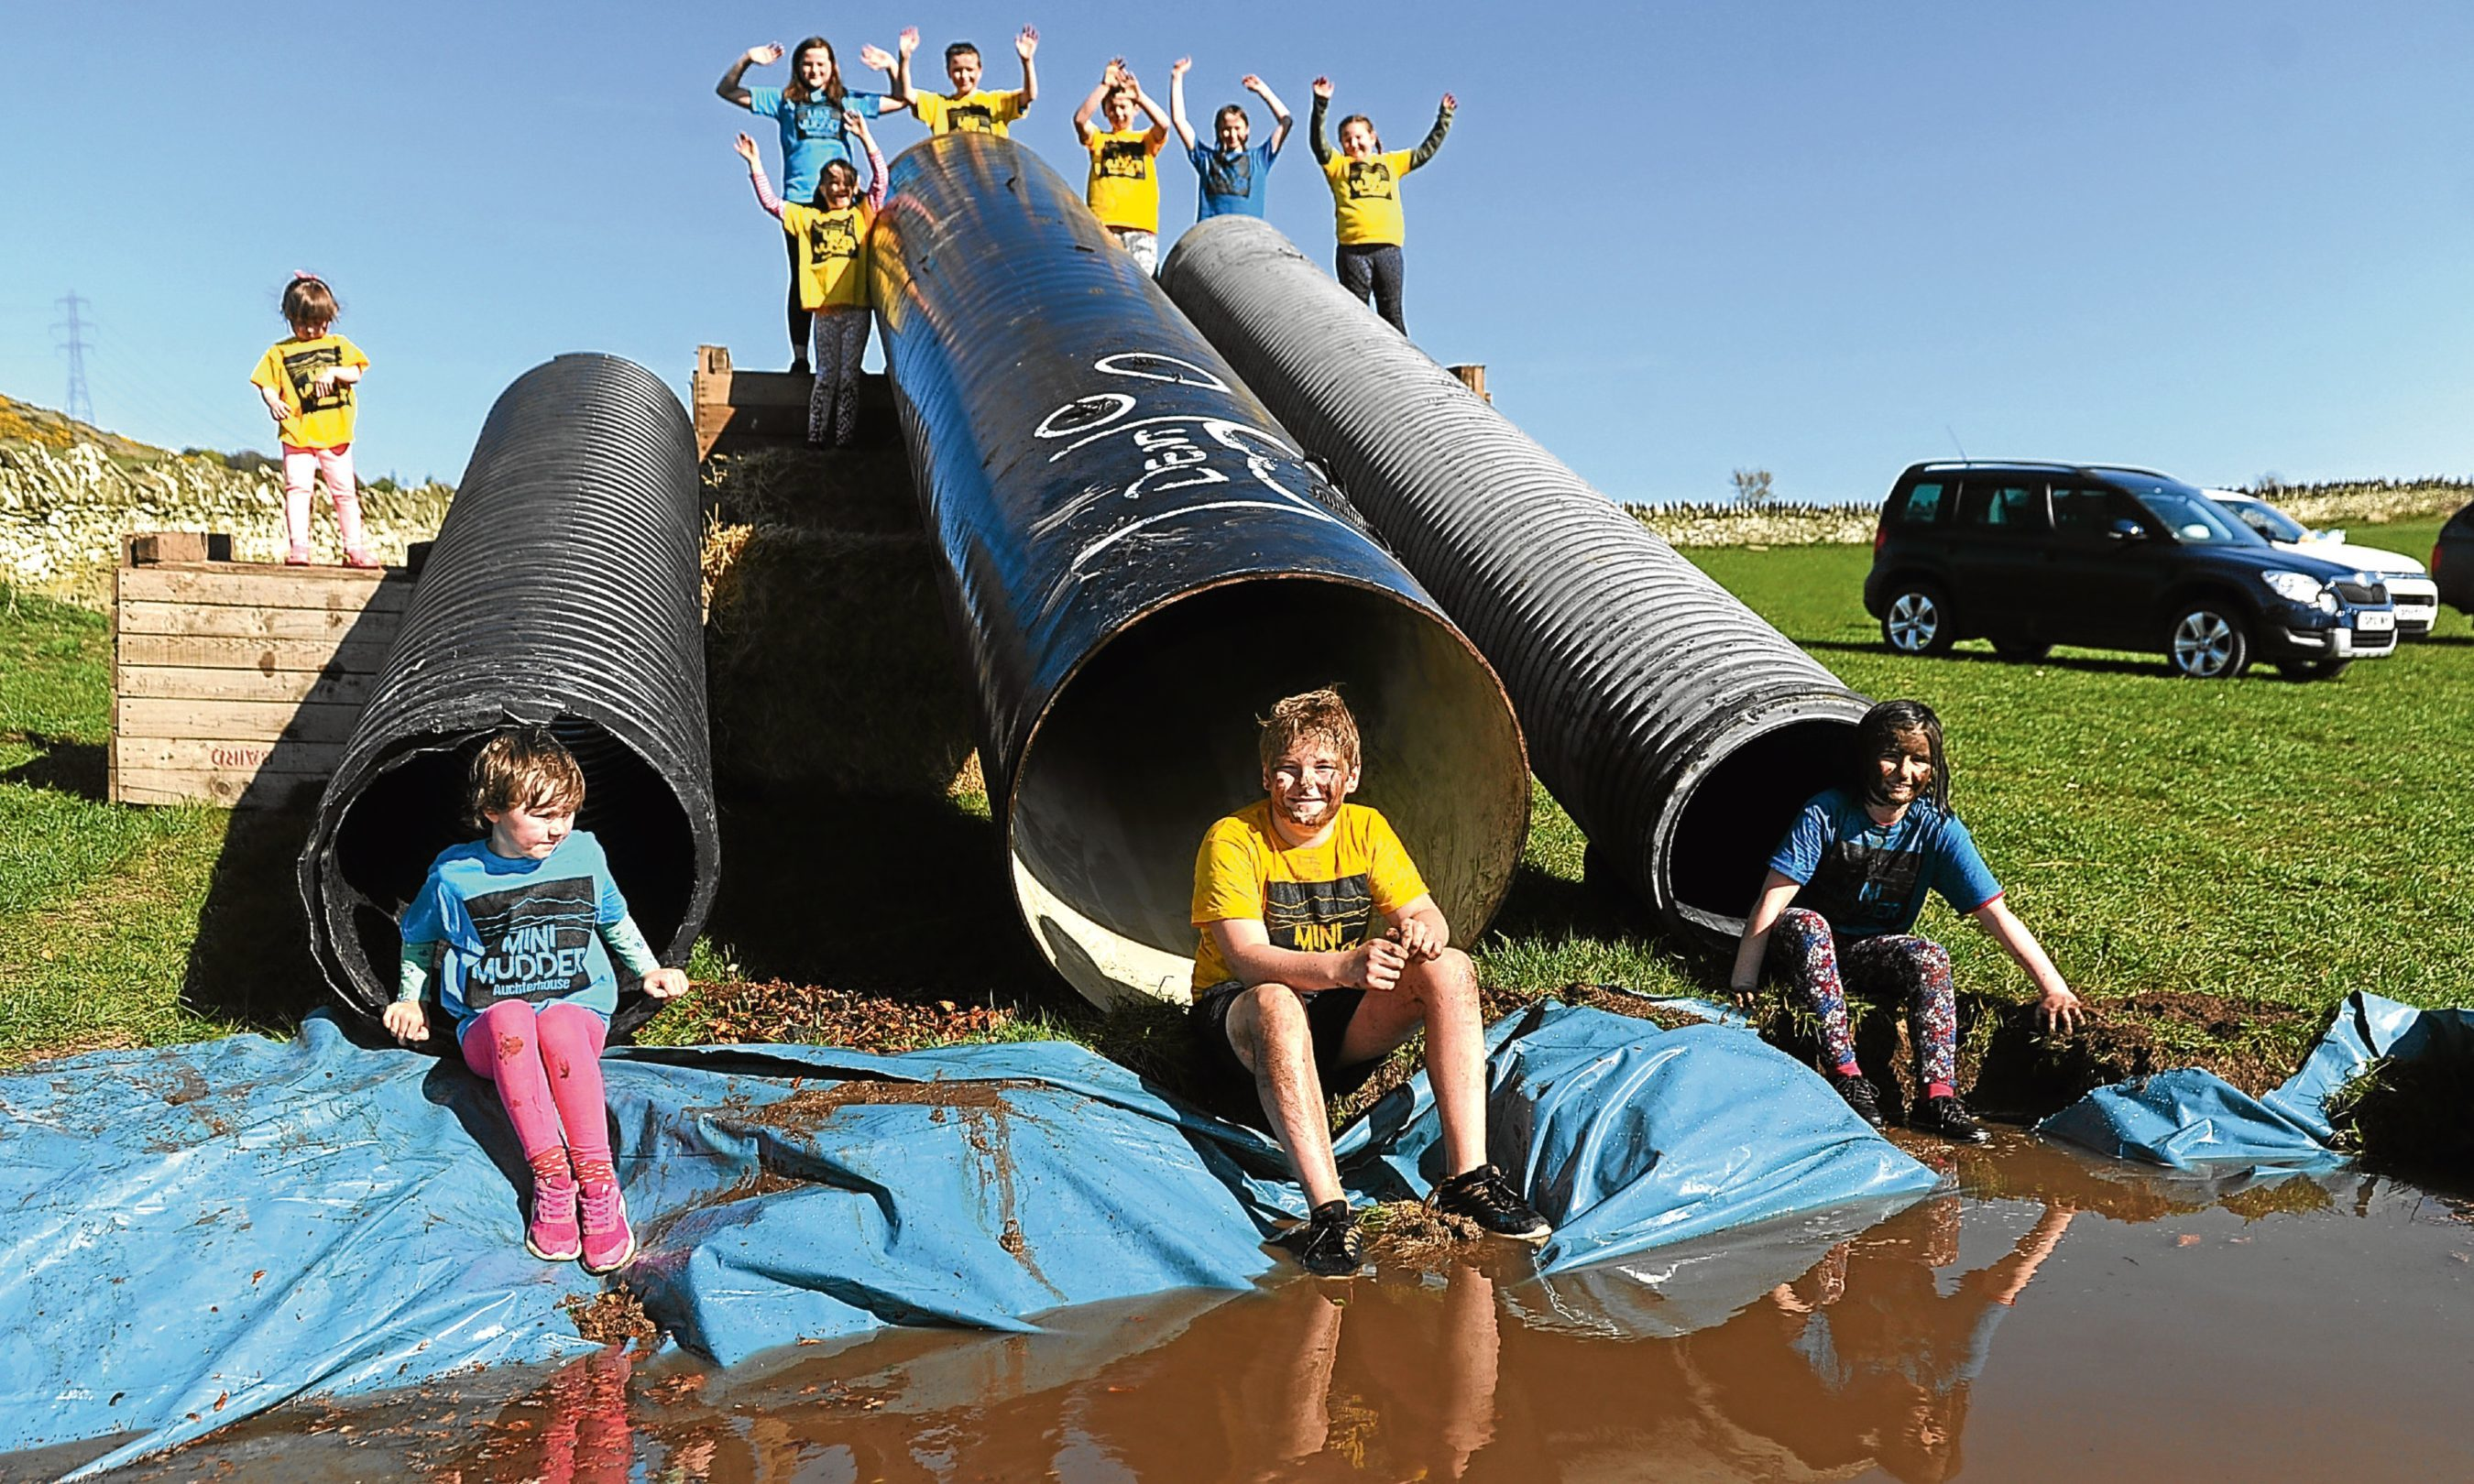 n Pictured are some of the children at the school testing out part of the course at Scotstoun Farm.